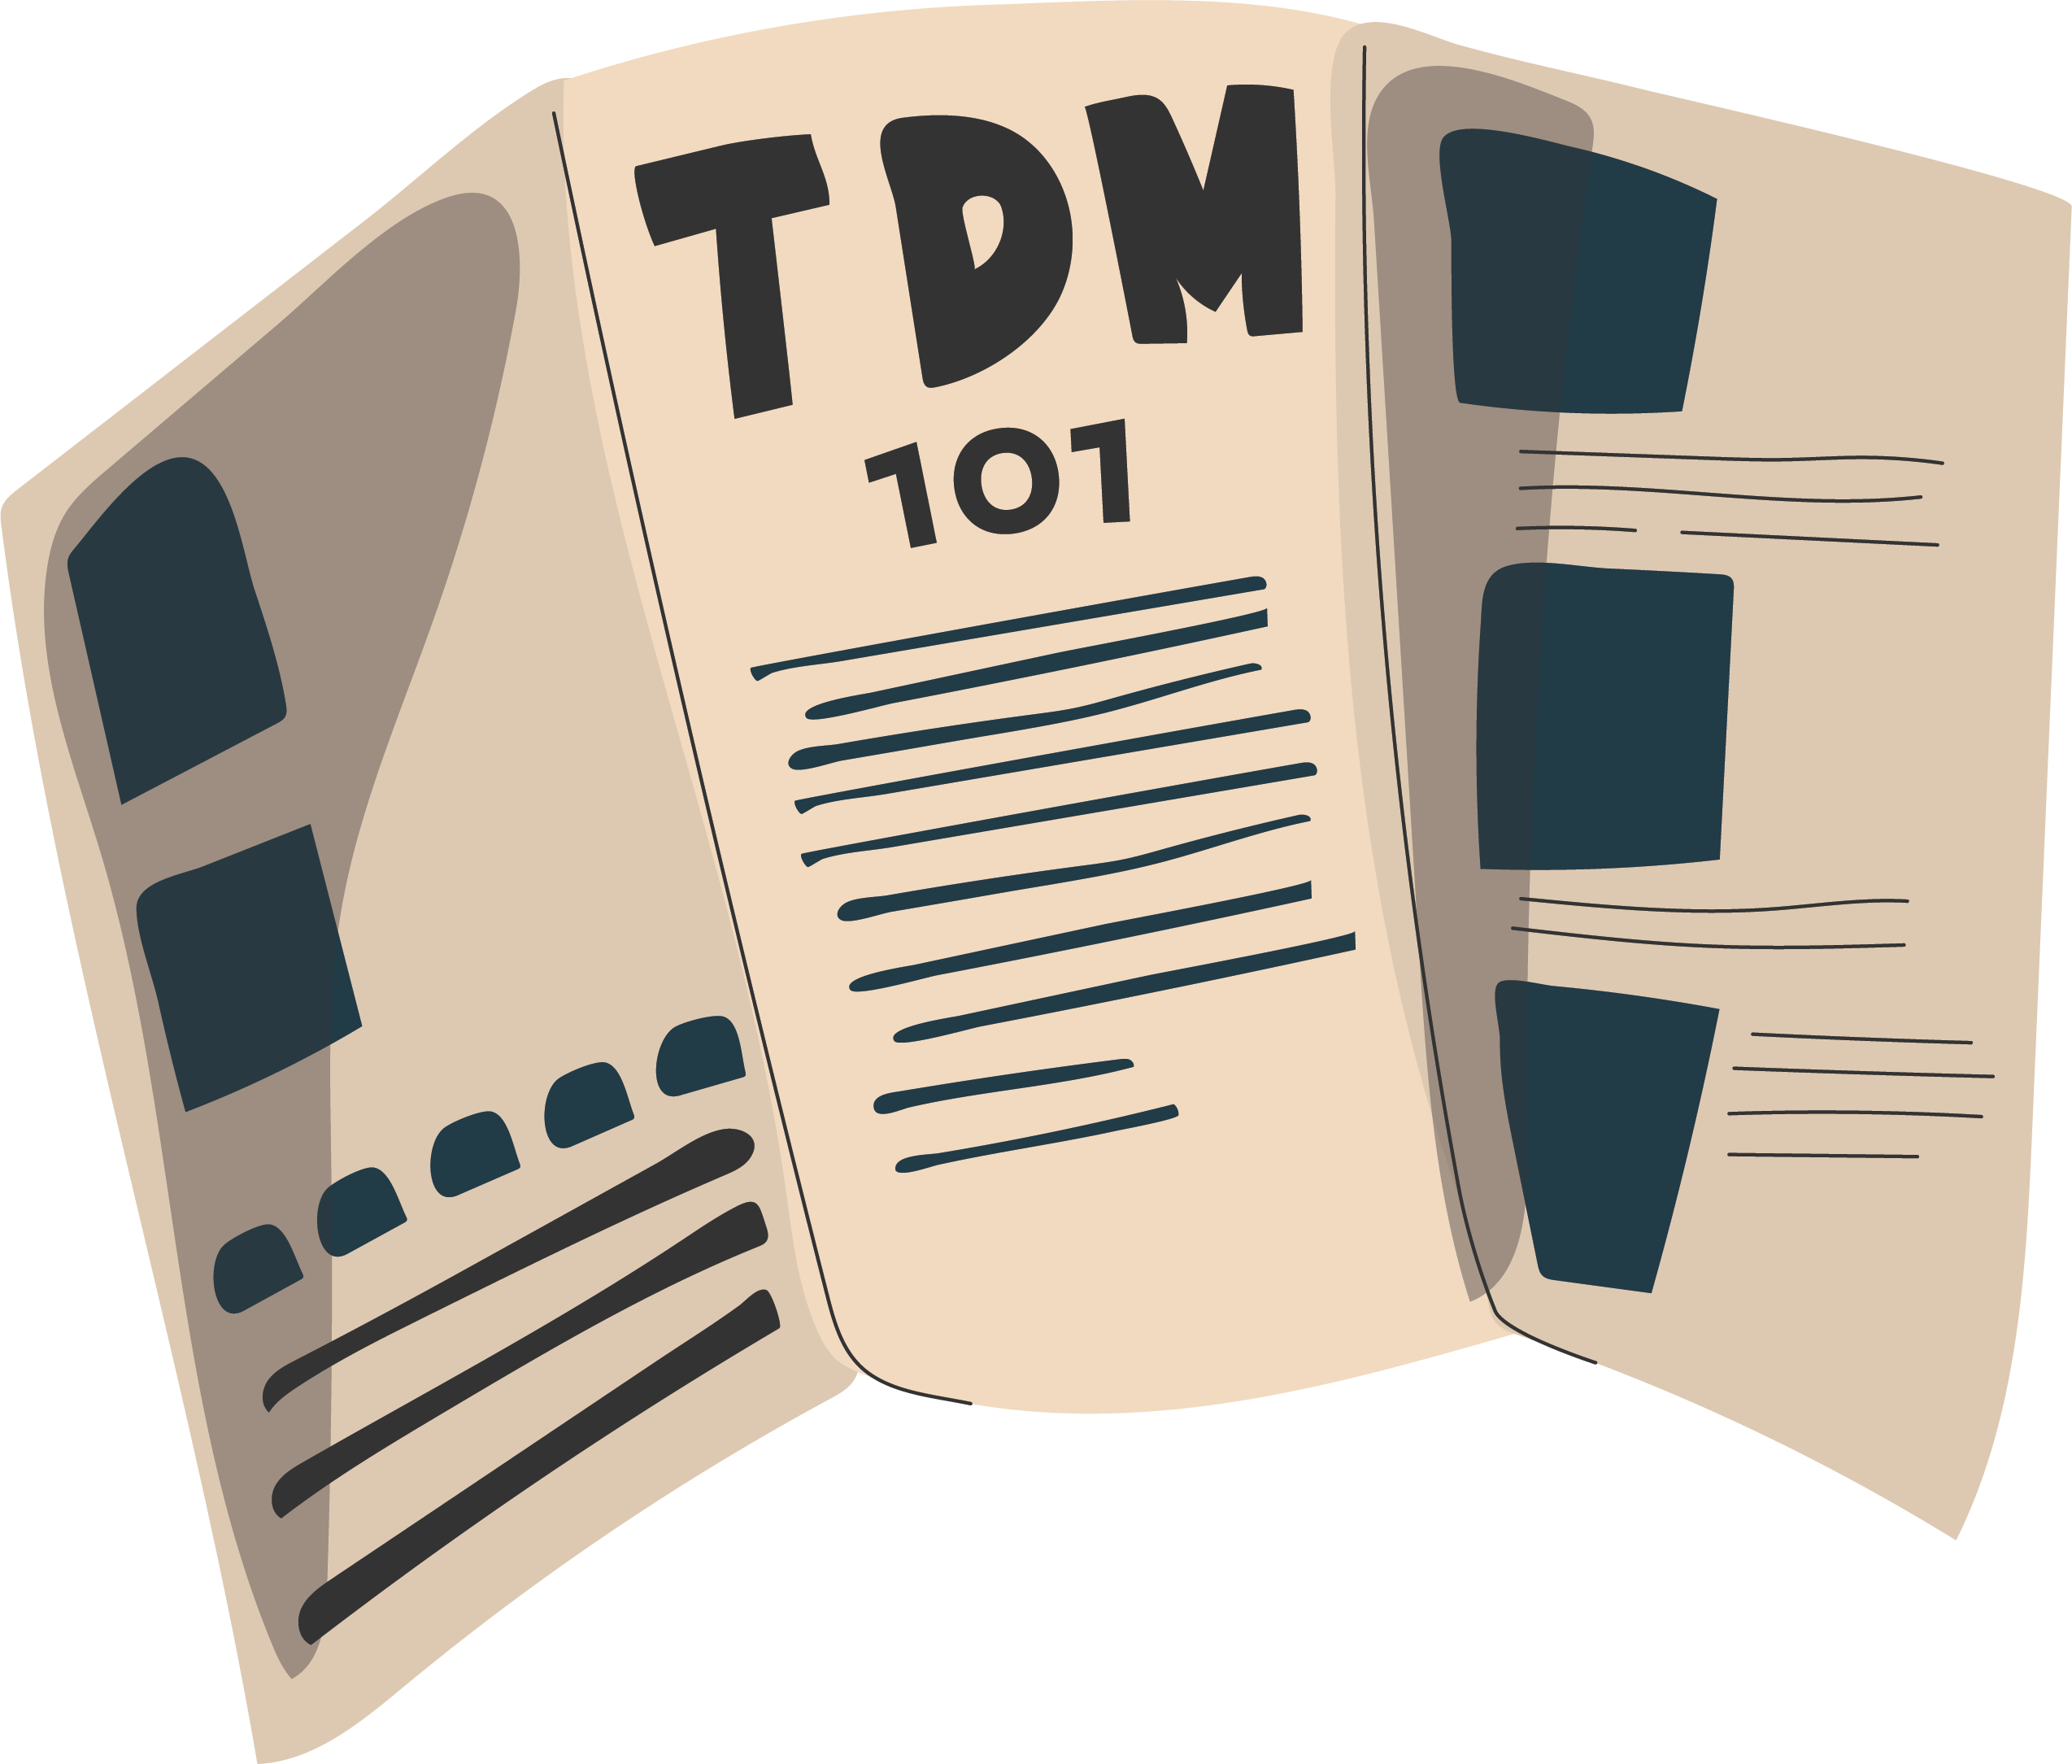 tdm101 current transportation demand management